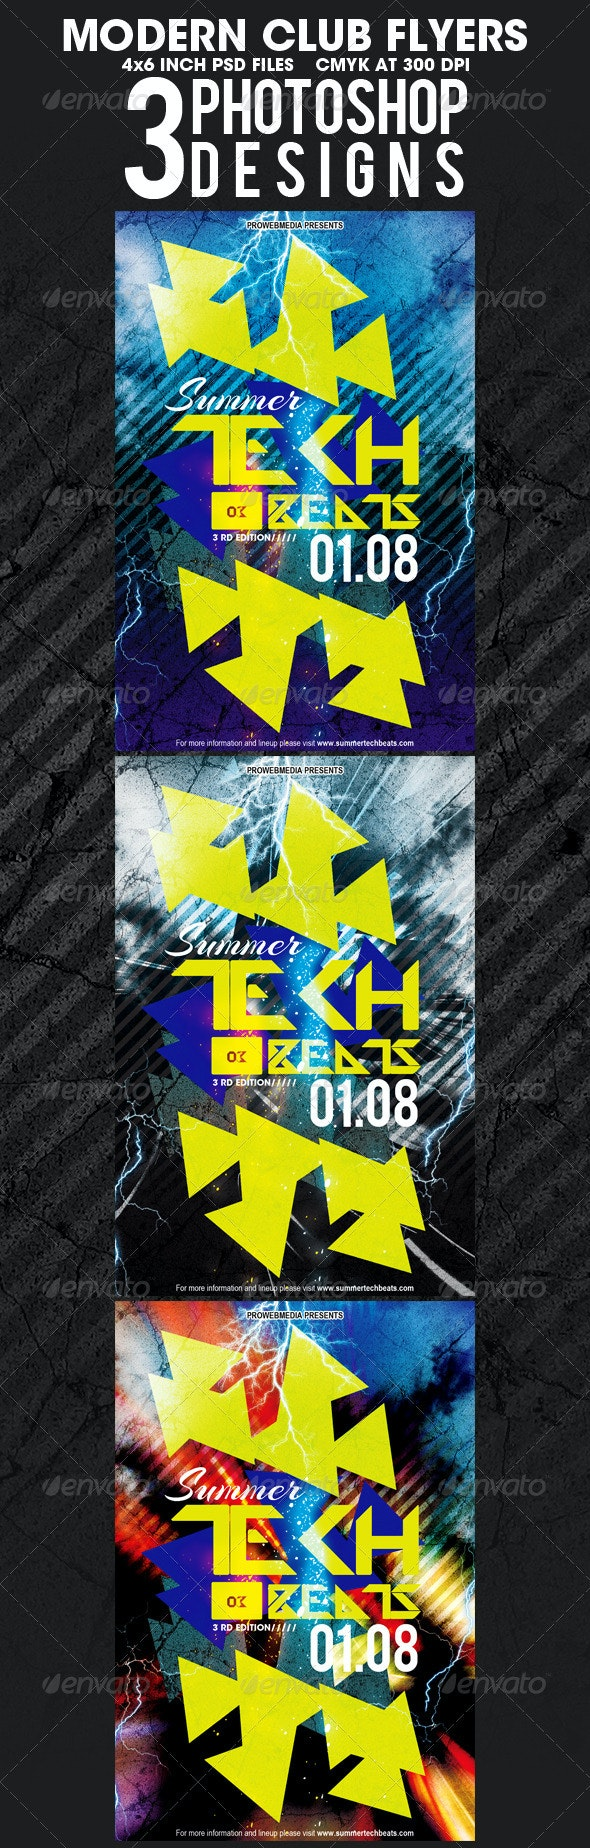 3 Modern Club Flyer Templates - Clubs & Parties Events